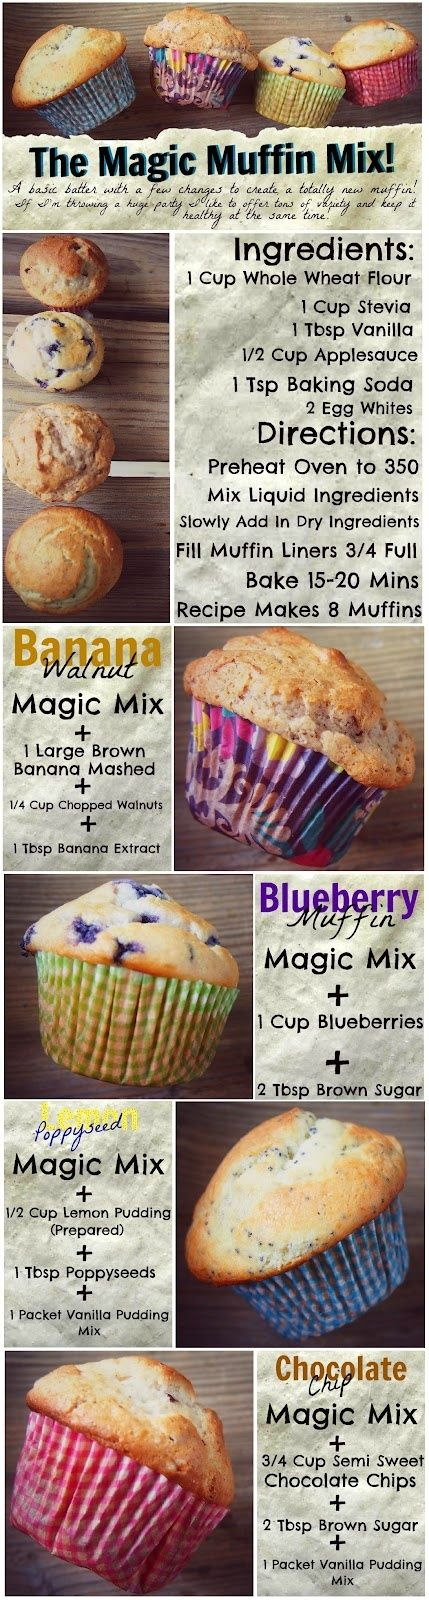 Magic (Healthy) Muffin Mix, DIY and simple instructions to make different flavors.